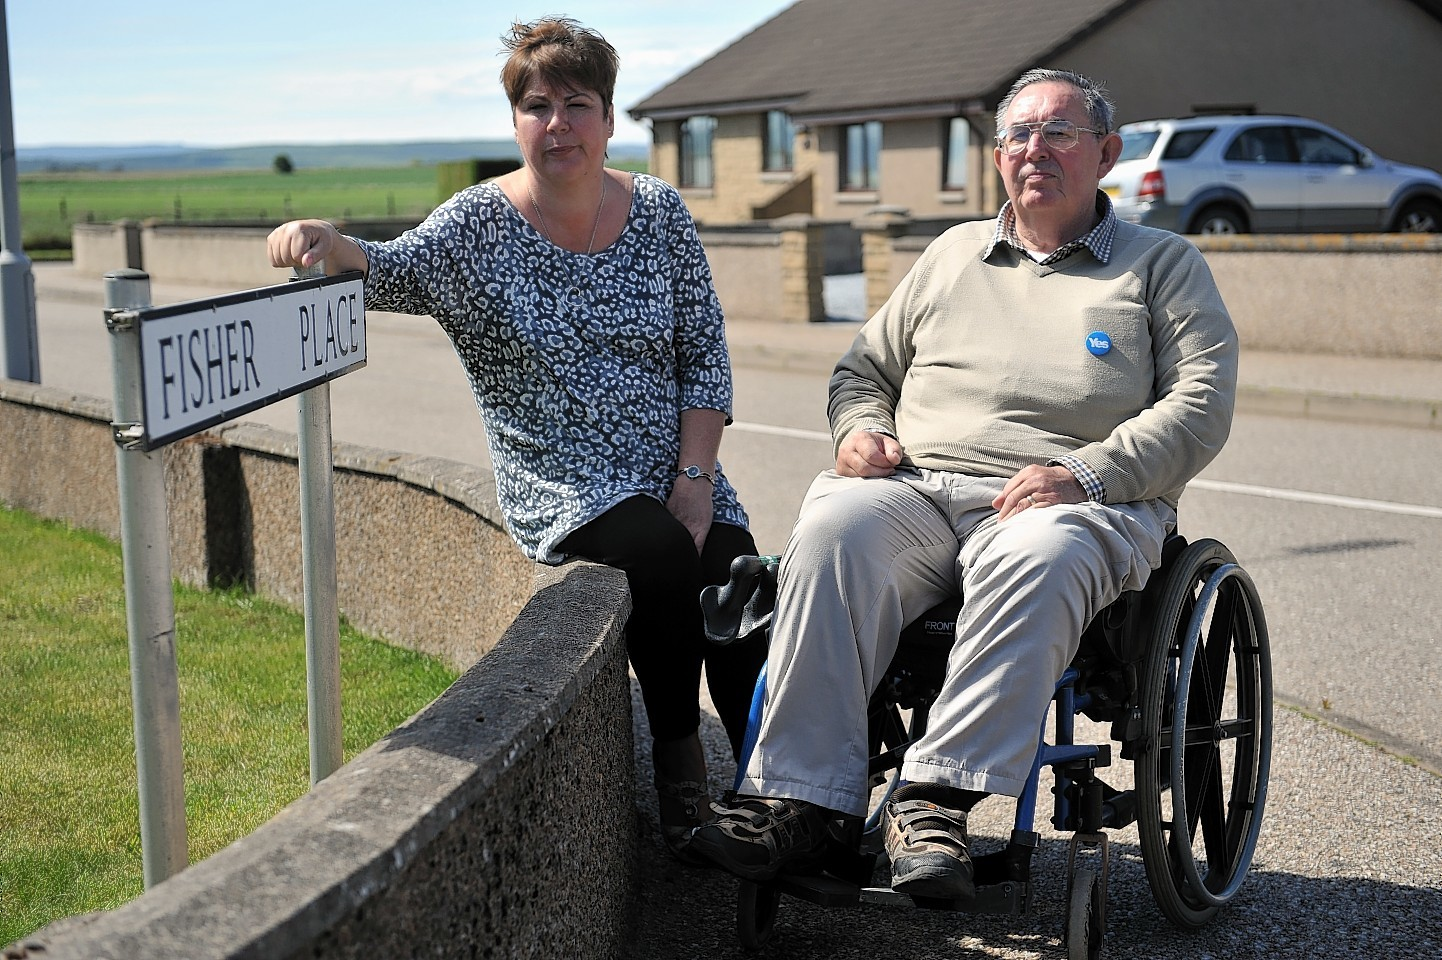 Gillian Priestley, left, and Robbie Murdoch, right, in Fisher Place, Lossiemouth which is possibly set to change from a cul-de-sac to a major thouroghfare to a new housing development